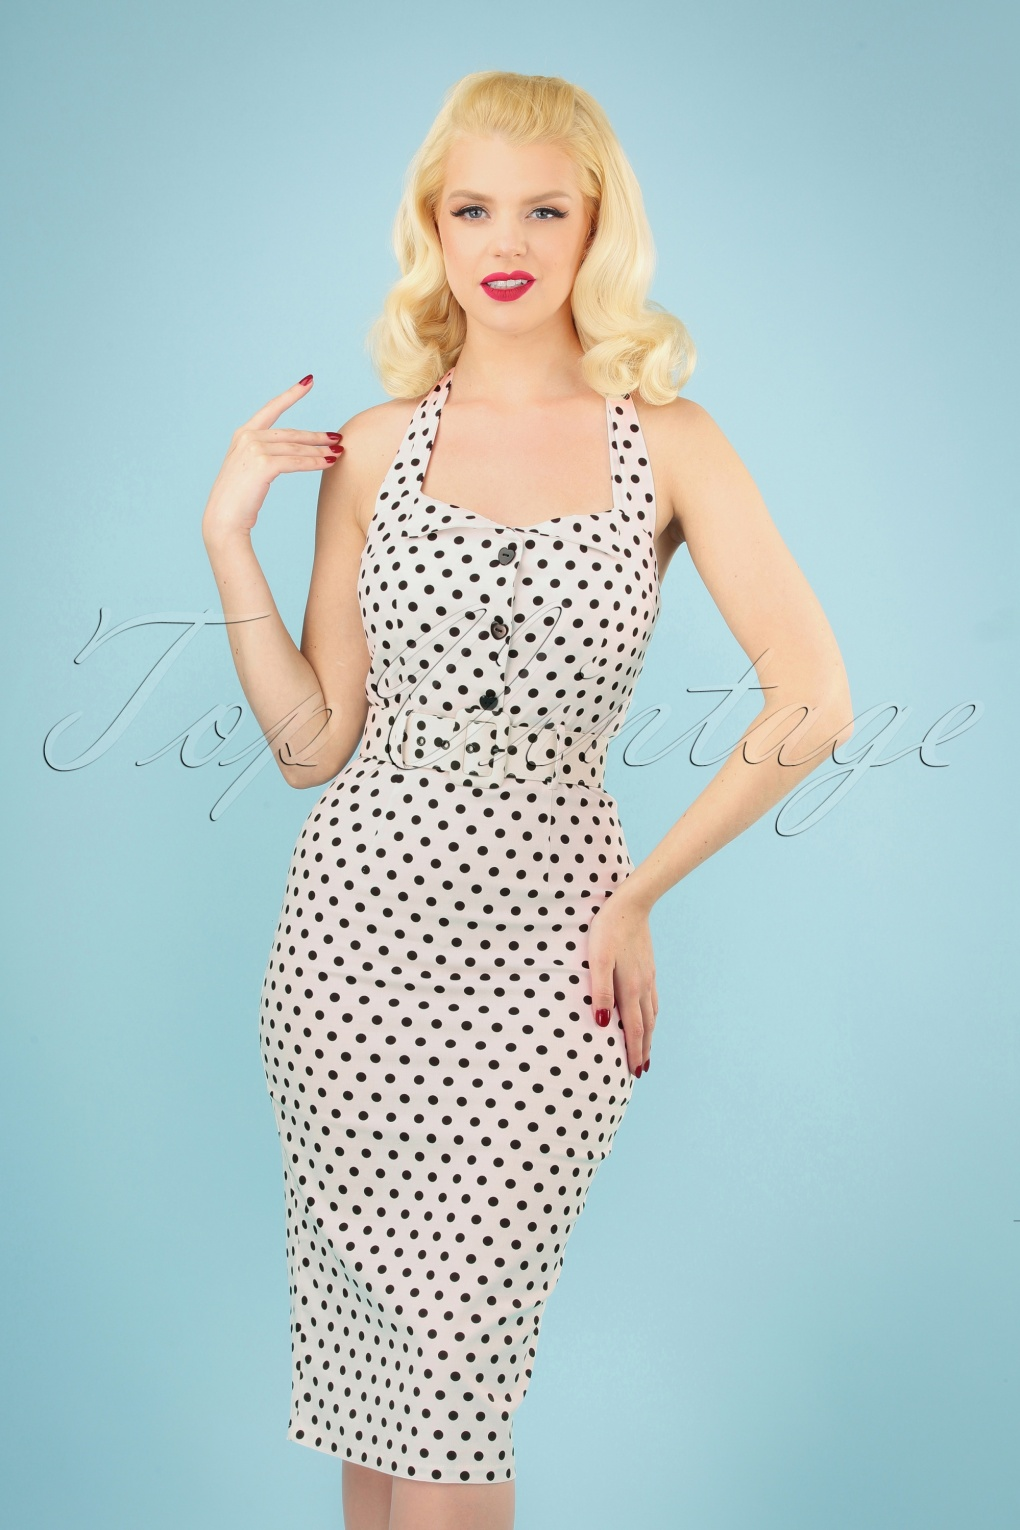 Vintage Burlesque Clothing, Costumes, Outfits 50s Wanda Polkadot Pencil Dress in White and Black £14.60 AT vintagedancer.com